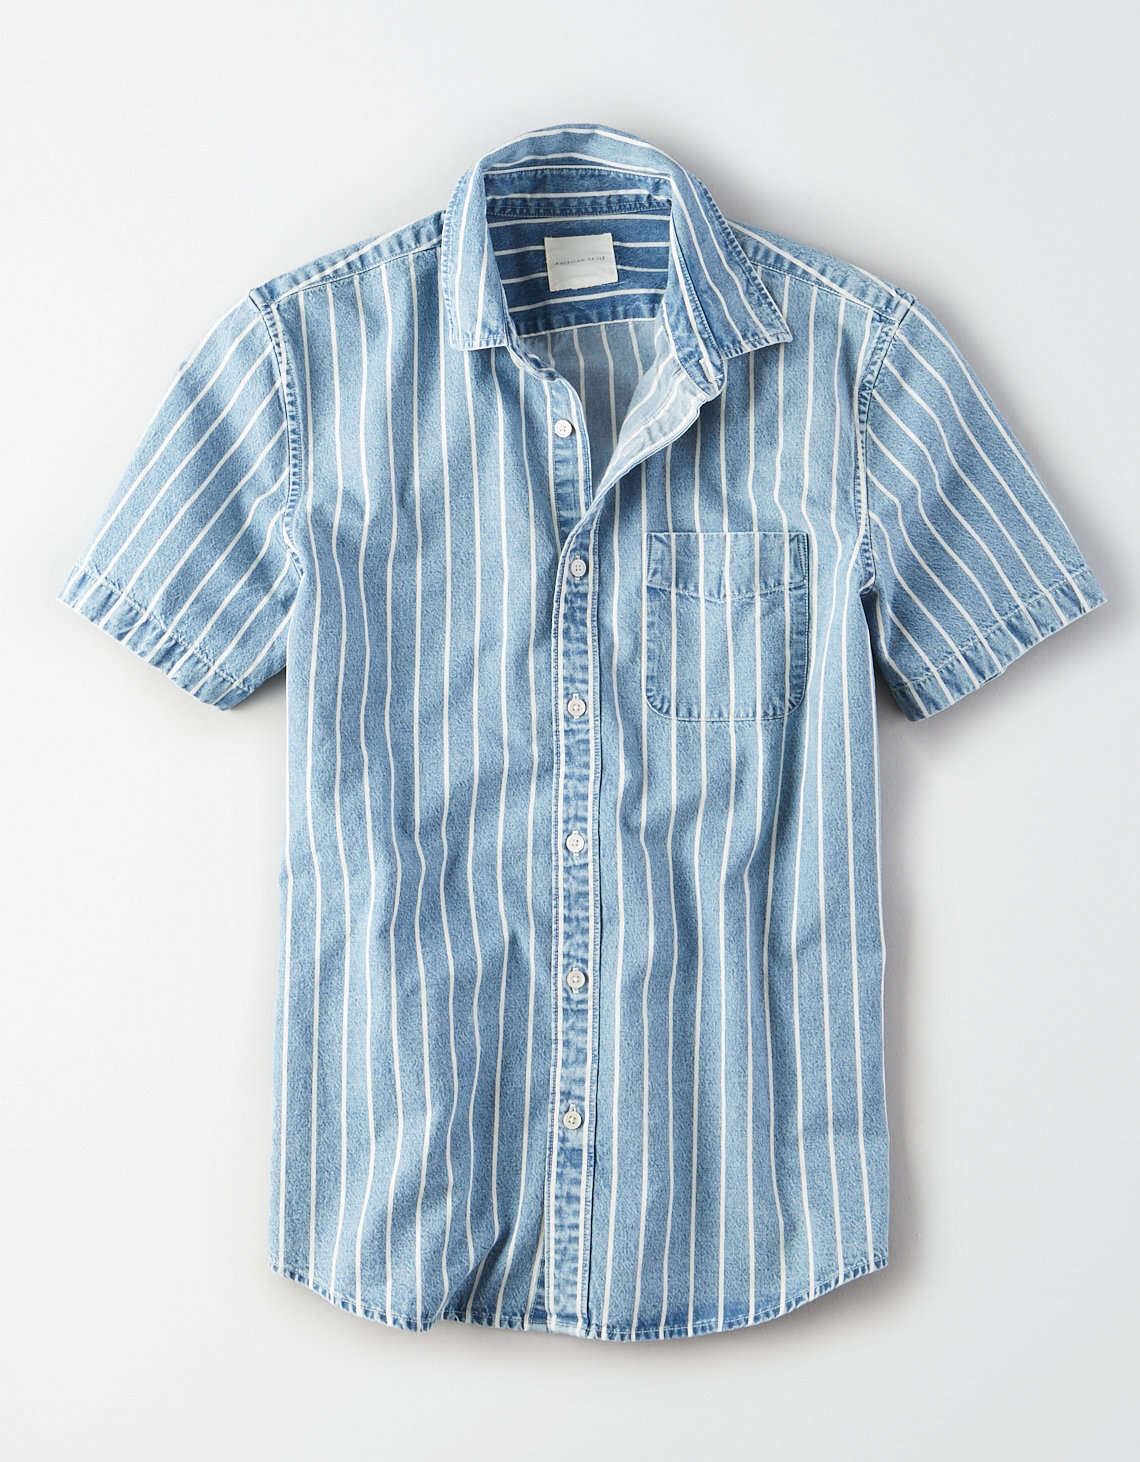 AE Striped Denim Button Up Shirt